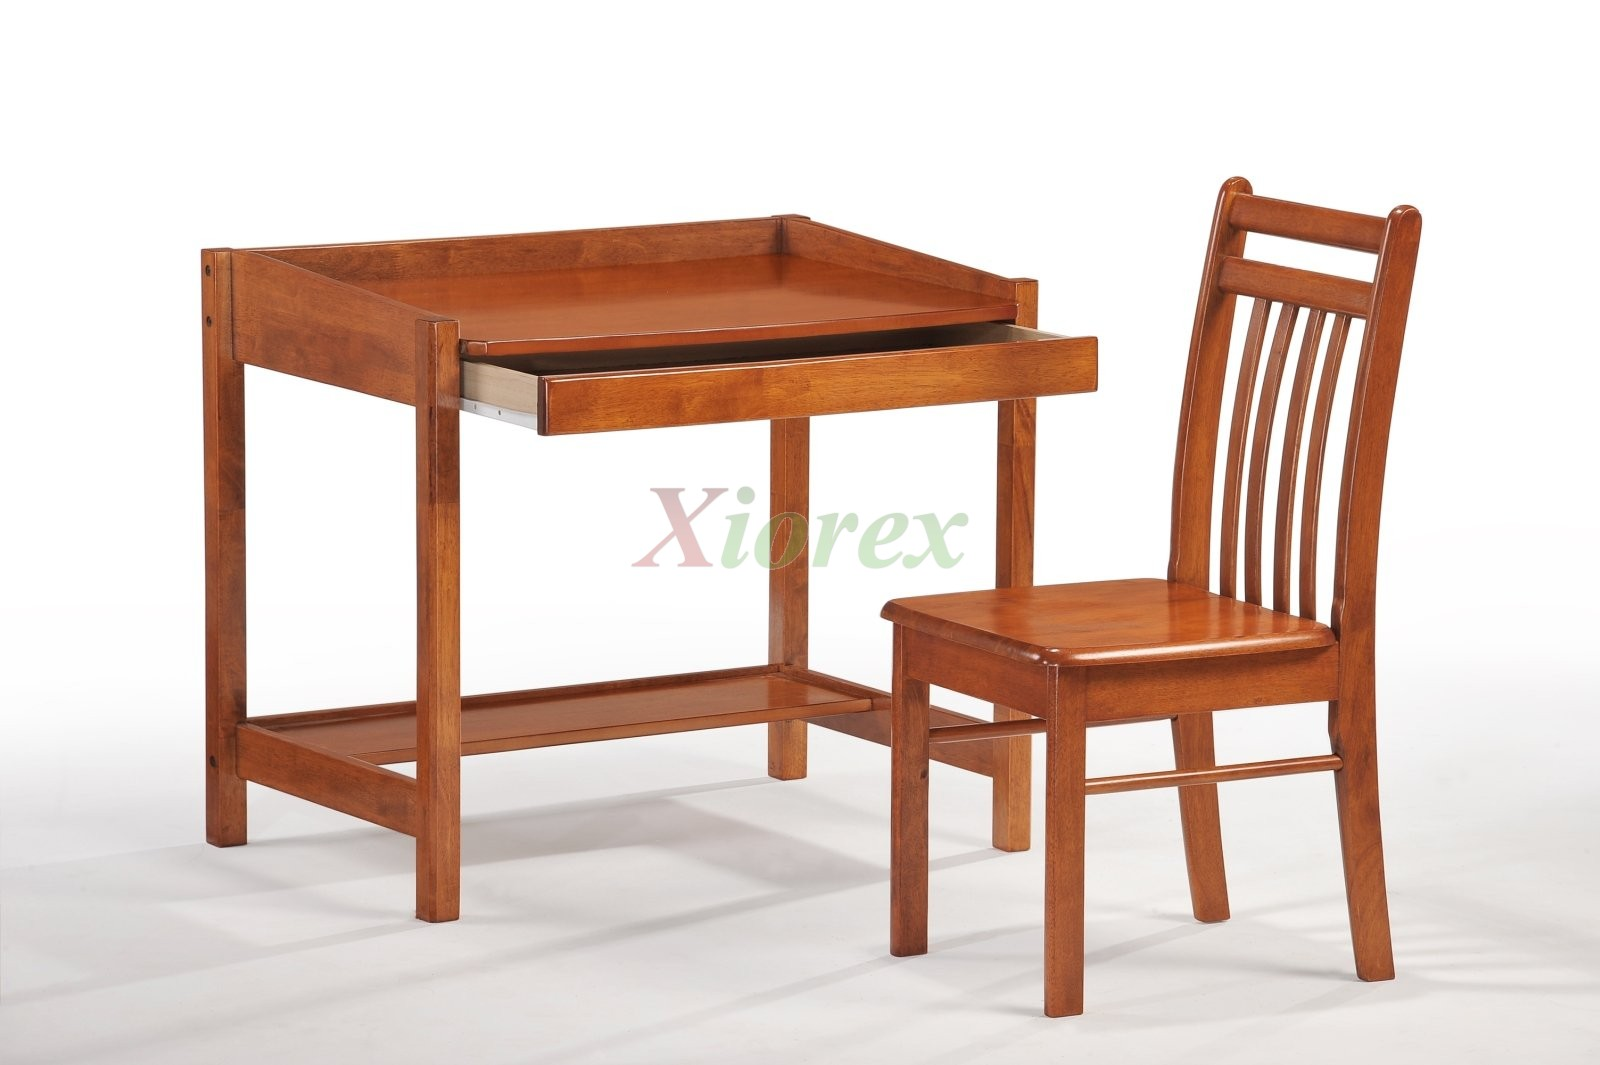 Student Desk Chair In Cherry For Night Day Zest Bed Sets Xiorex